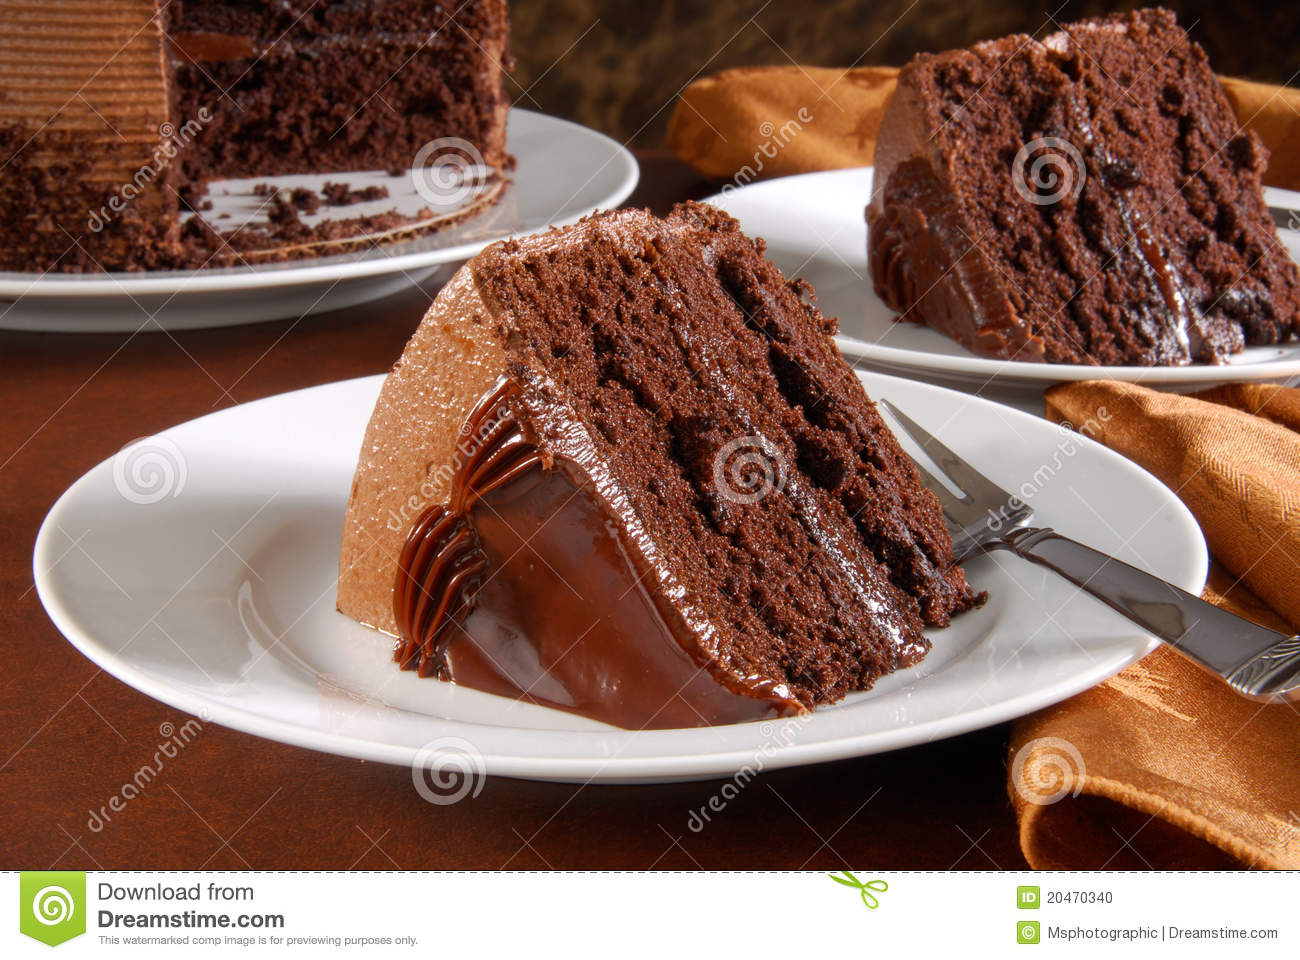 Slices Of Gourmet Chocolate Cake Stock Photo - Image: 20470340